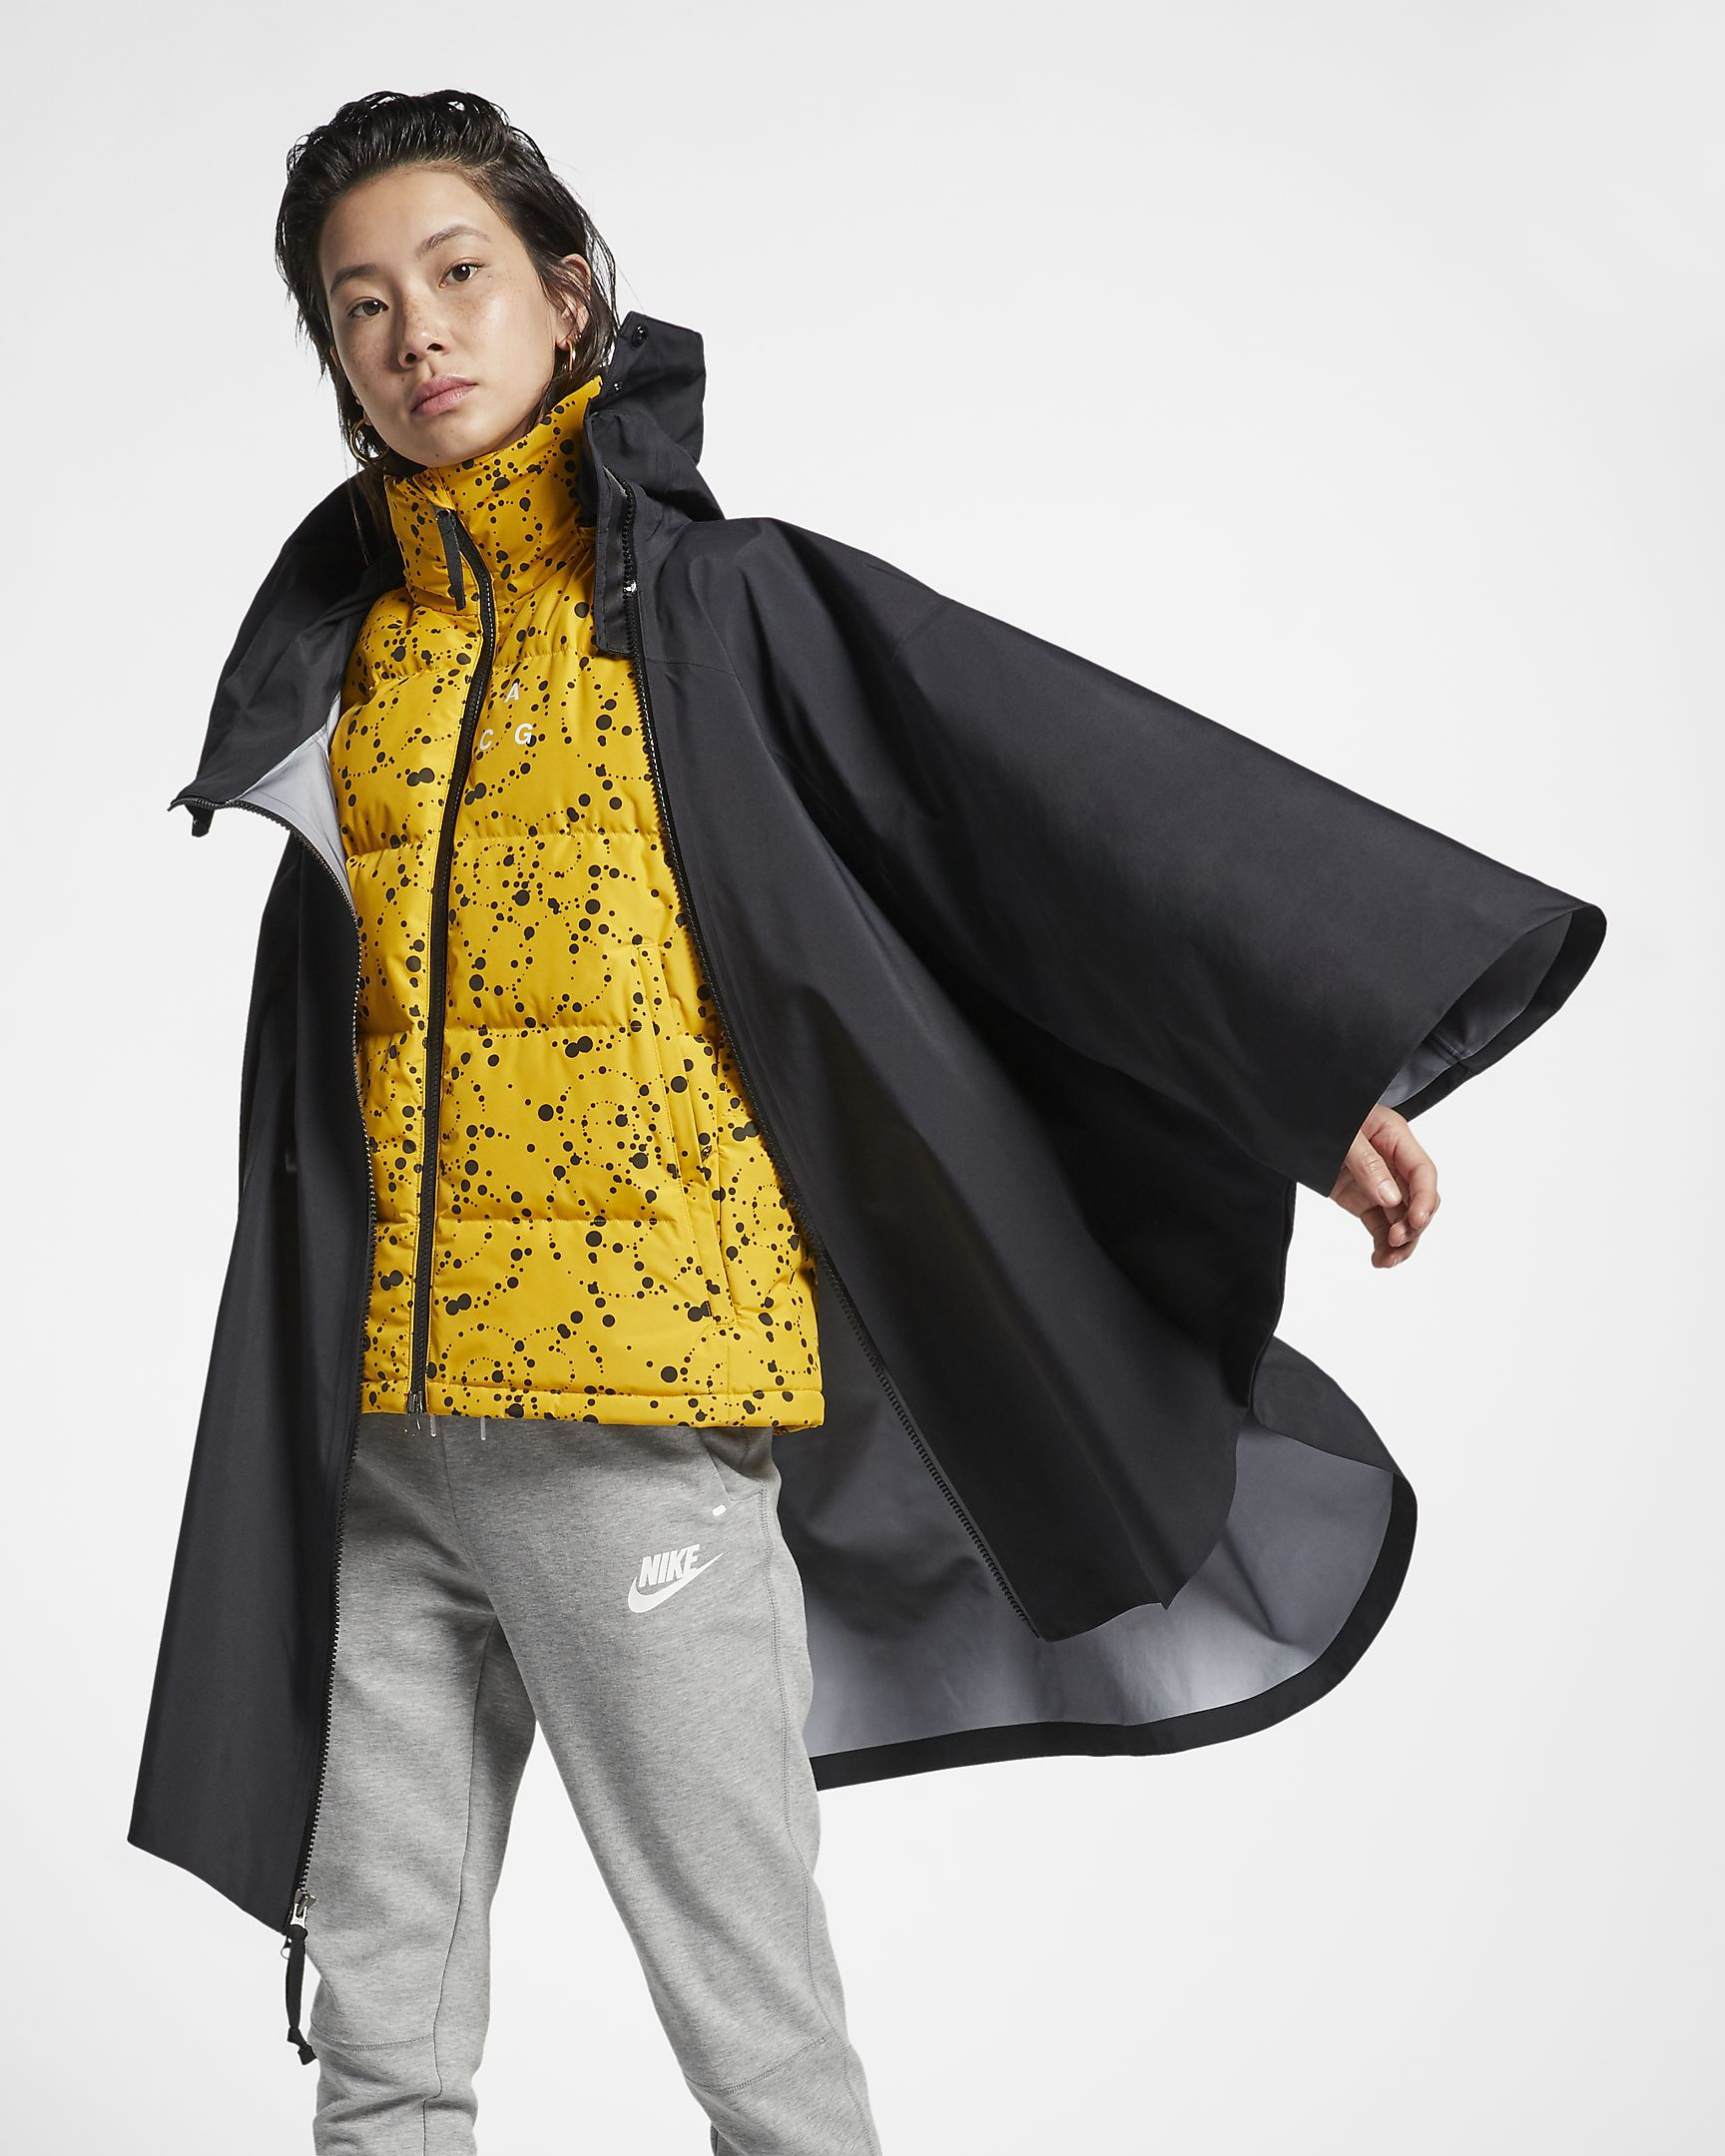 NikeLab ACG GORE TEX 3 in 1 Women's Poncho | Ladies poncho